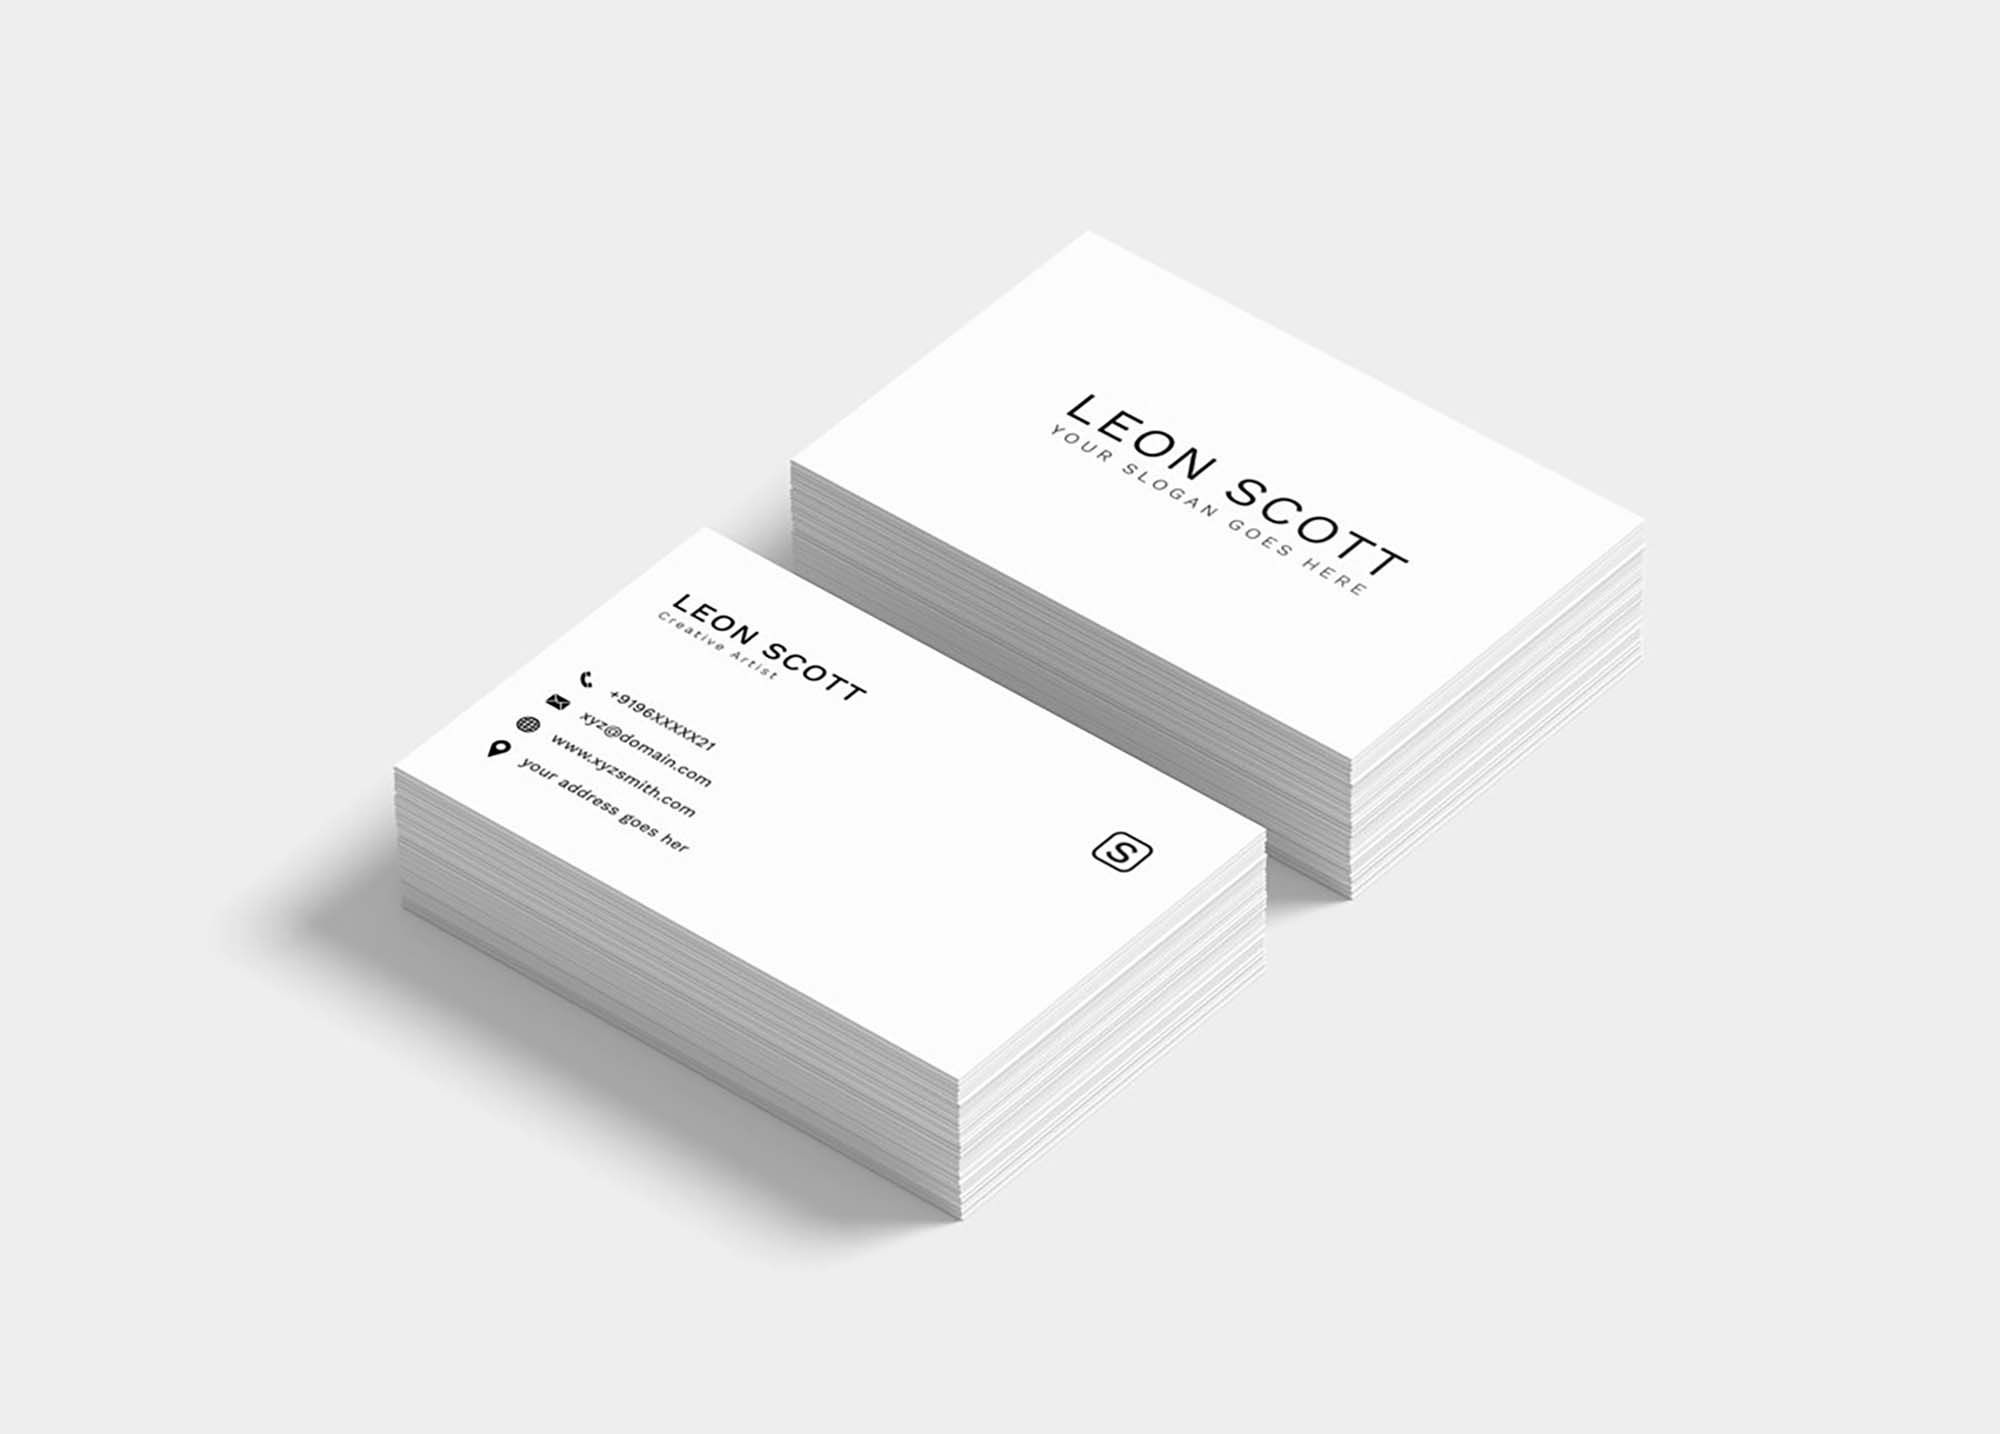 004 Breathtaking Simple Busines Card Template Free Download High Definition  Visiting Design Psd File MinimalistFull